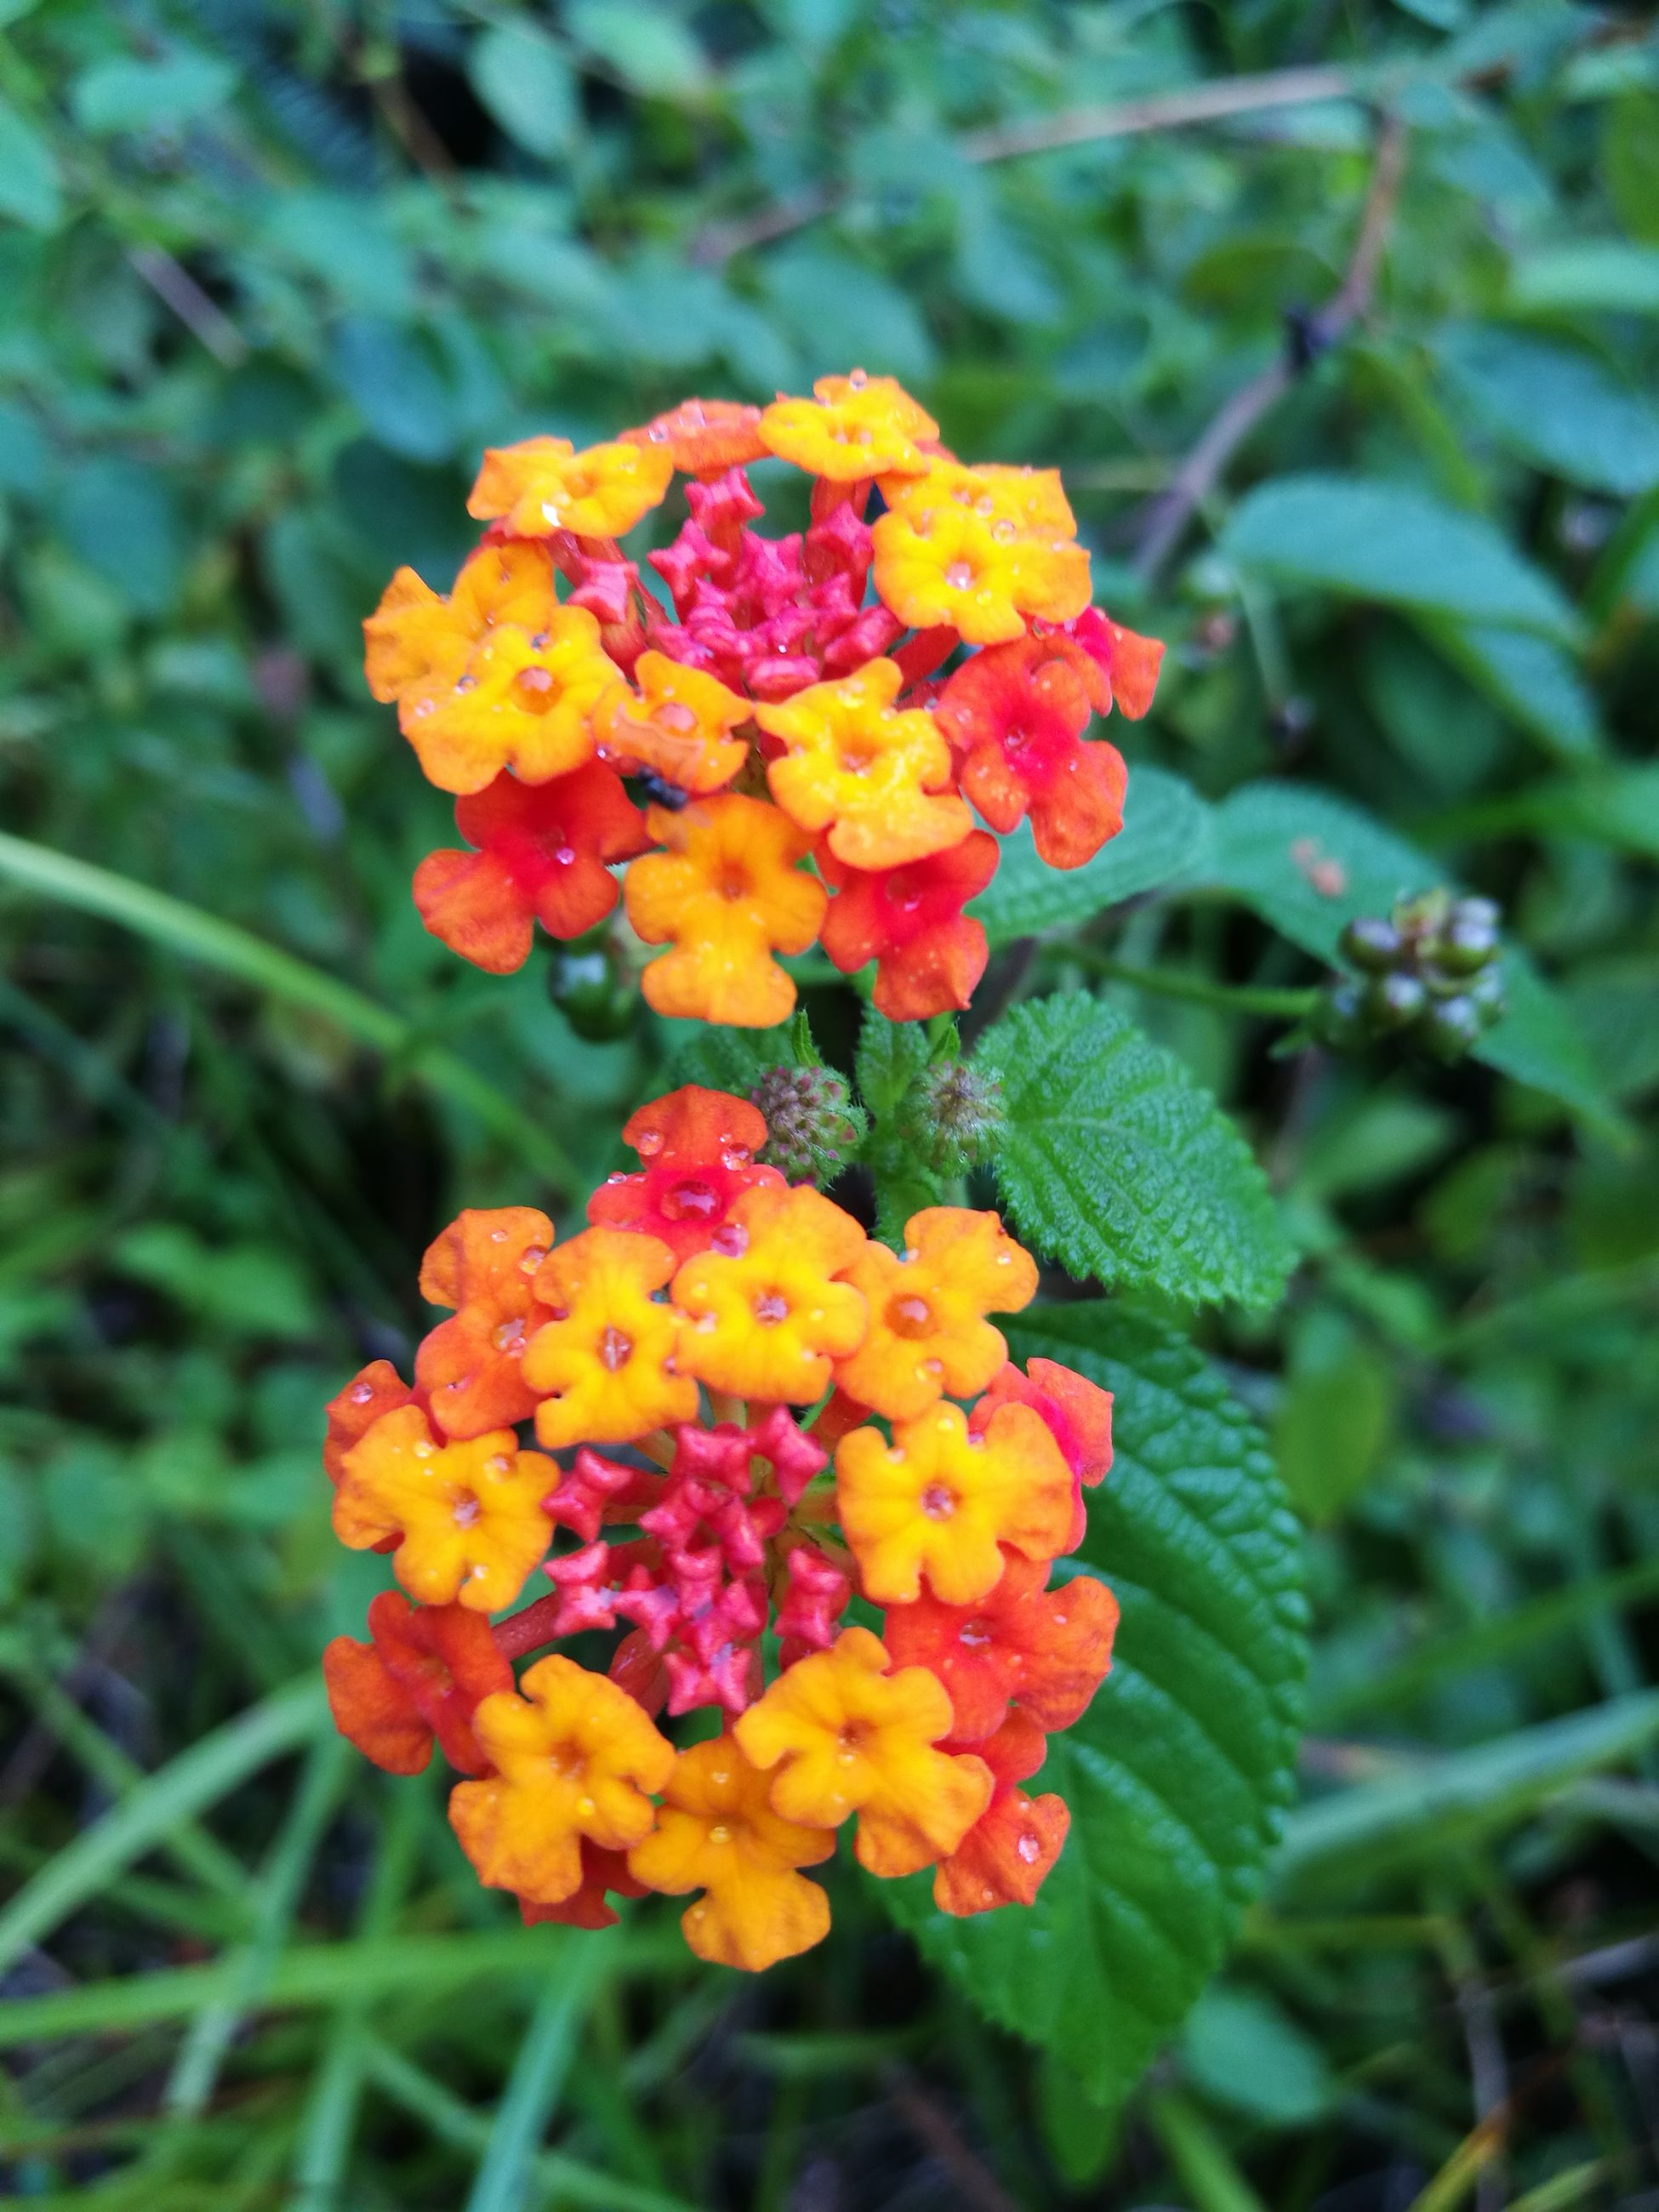 flower, fragility, beauty in nature, freshness, nature, growth, focus on foreground, plant, blooming, petal, flower head, outdoors, day, close-up, no people, lantana camara